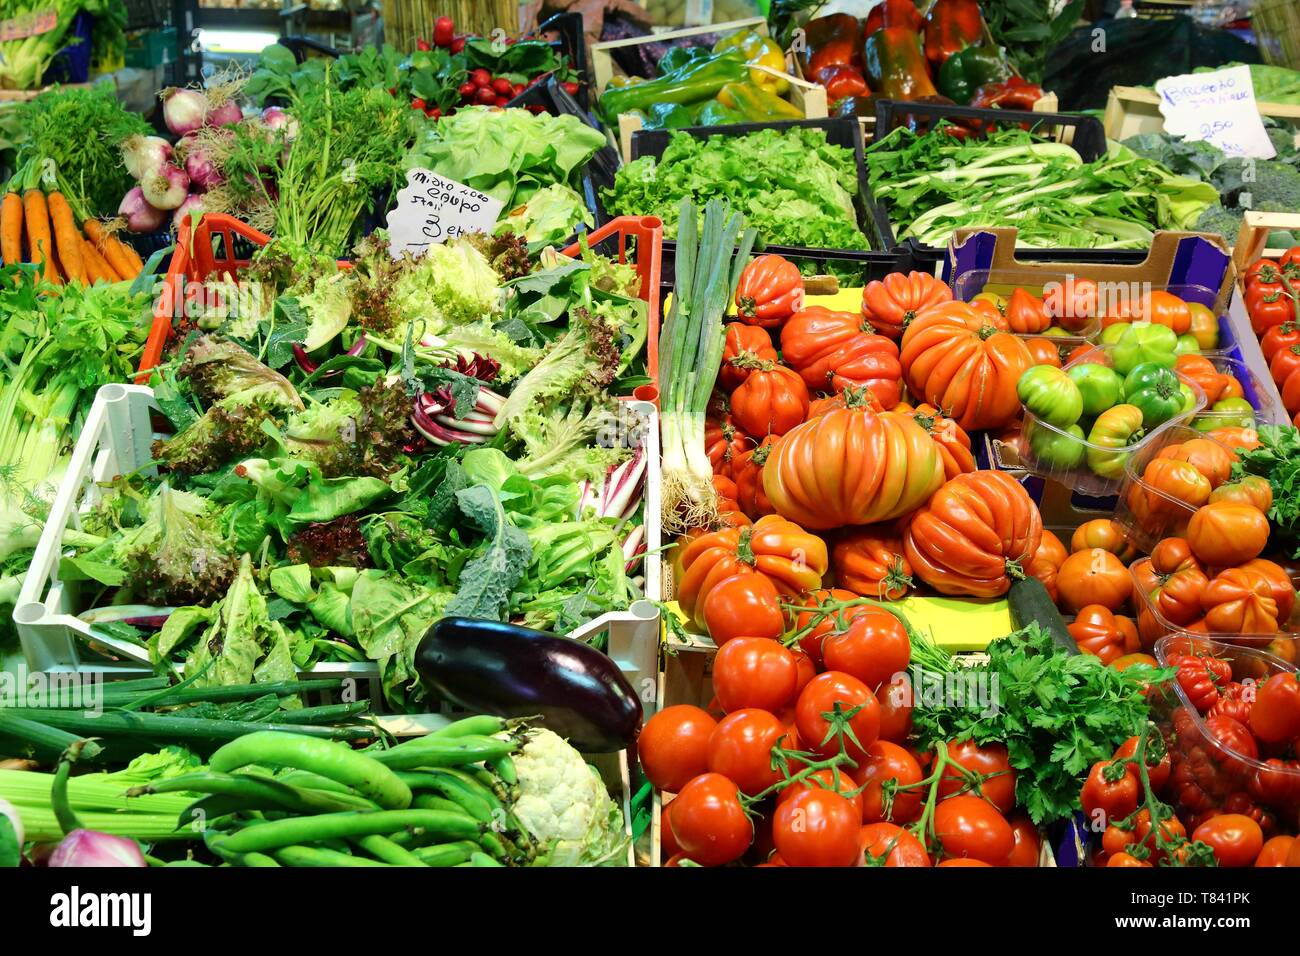 Vegetables and fruit at a grocery market in Florence, Italy. - Stock Image